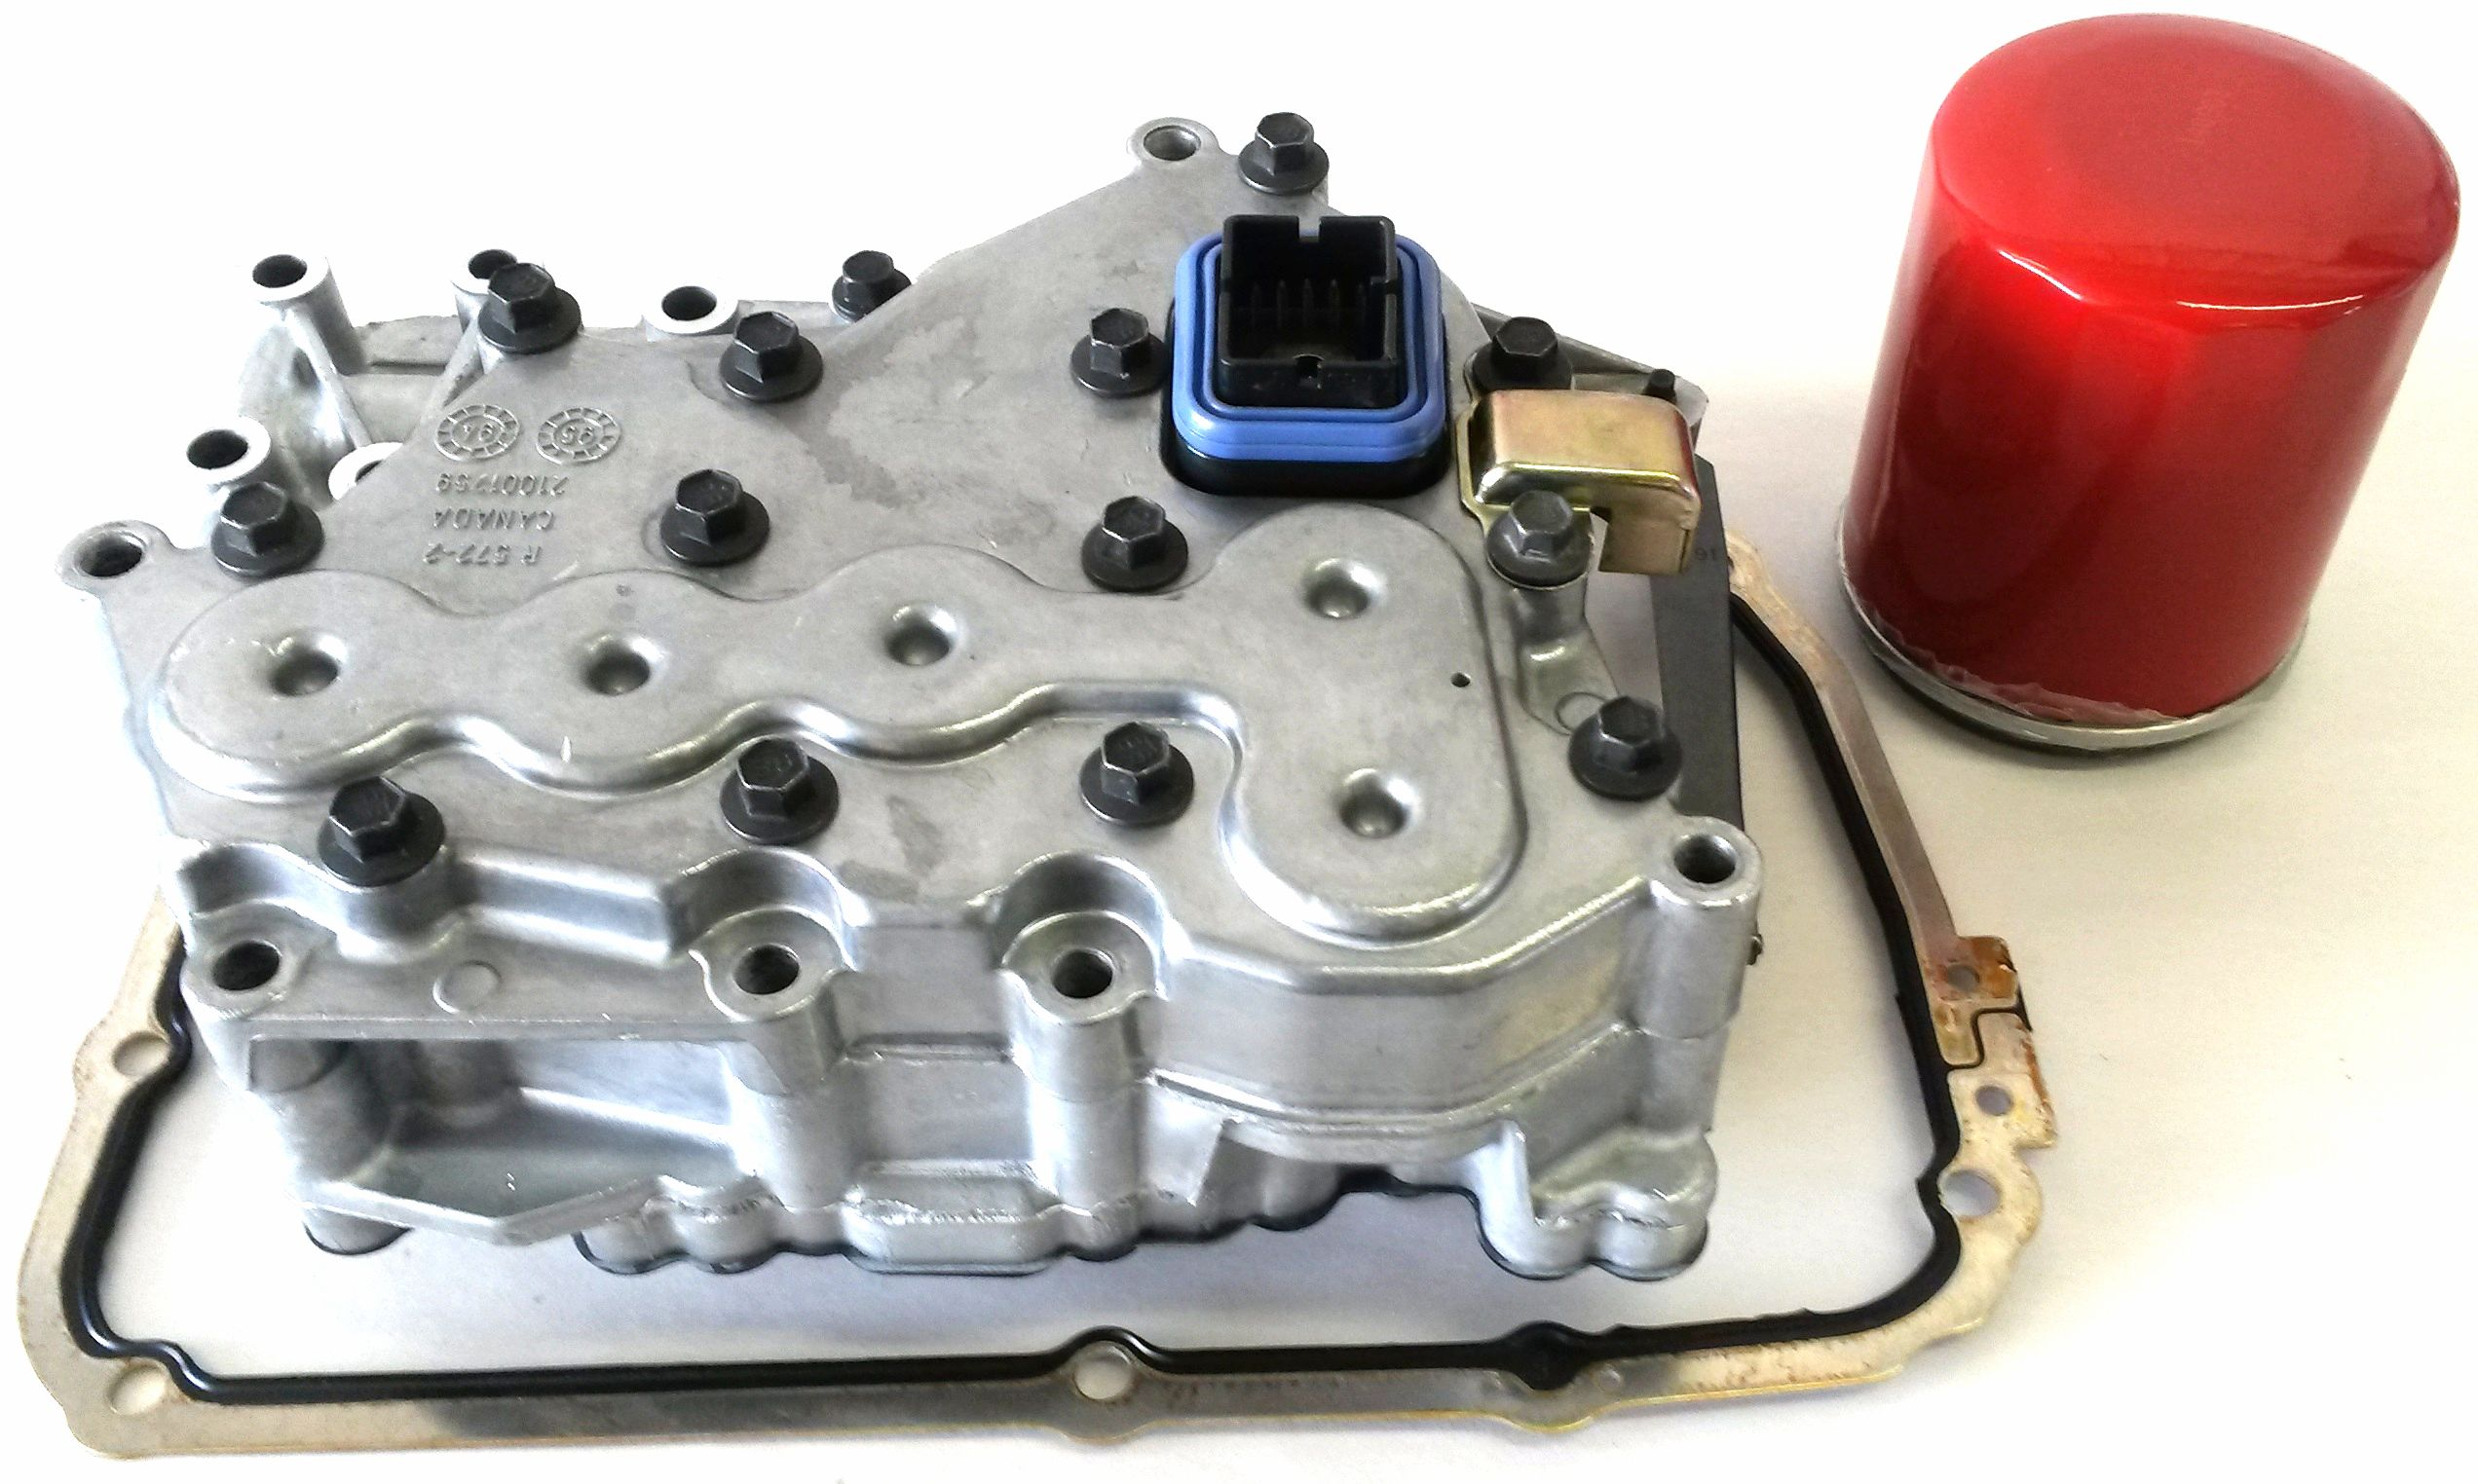 1997-2002 TAAT SATURN VALVE BODY WITH BONDED GASKET SPIN ON FILTER EXTERNAL REMANUFACTURED